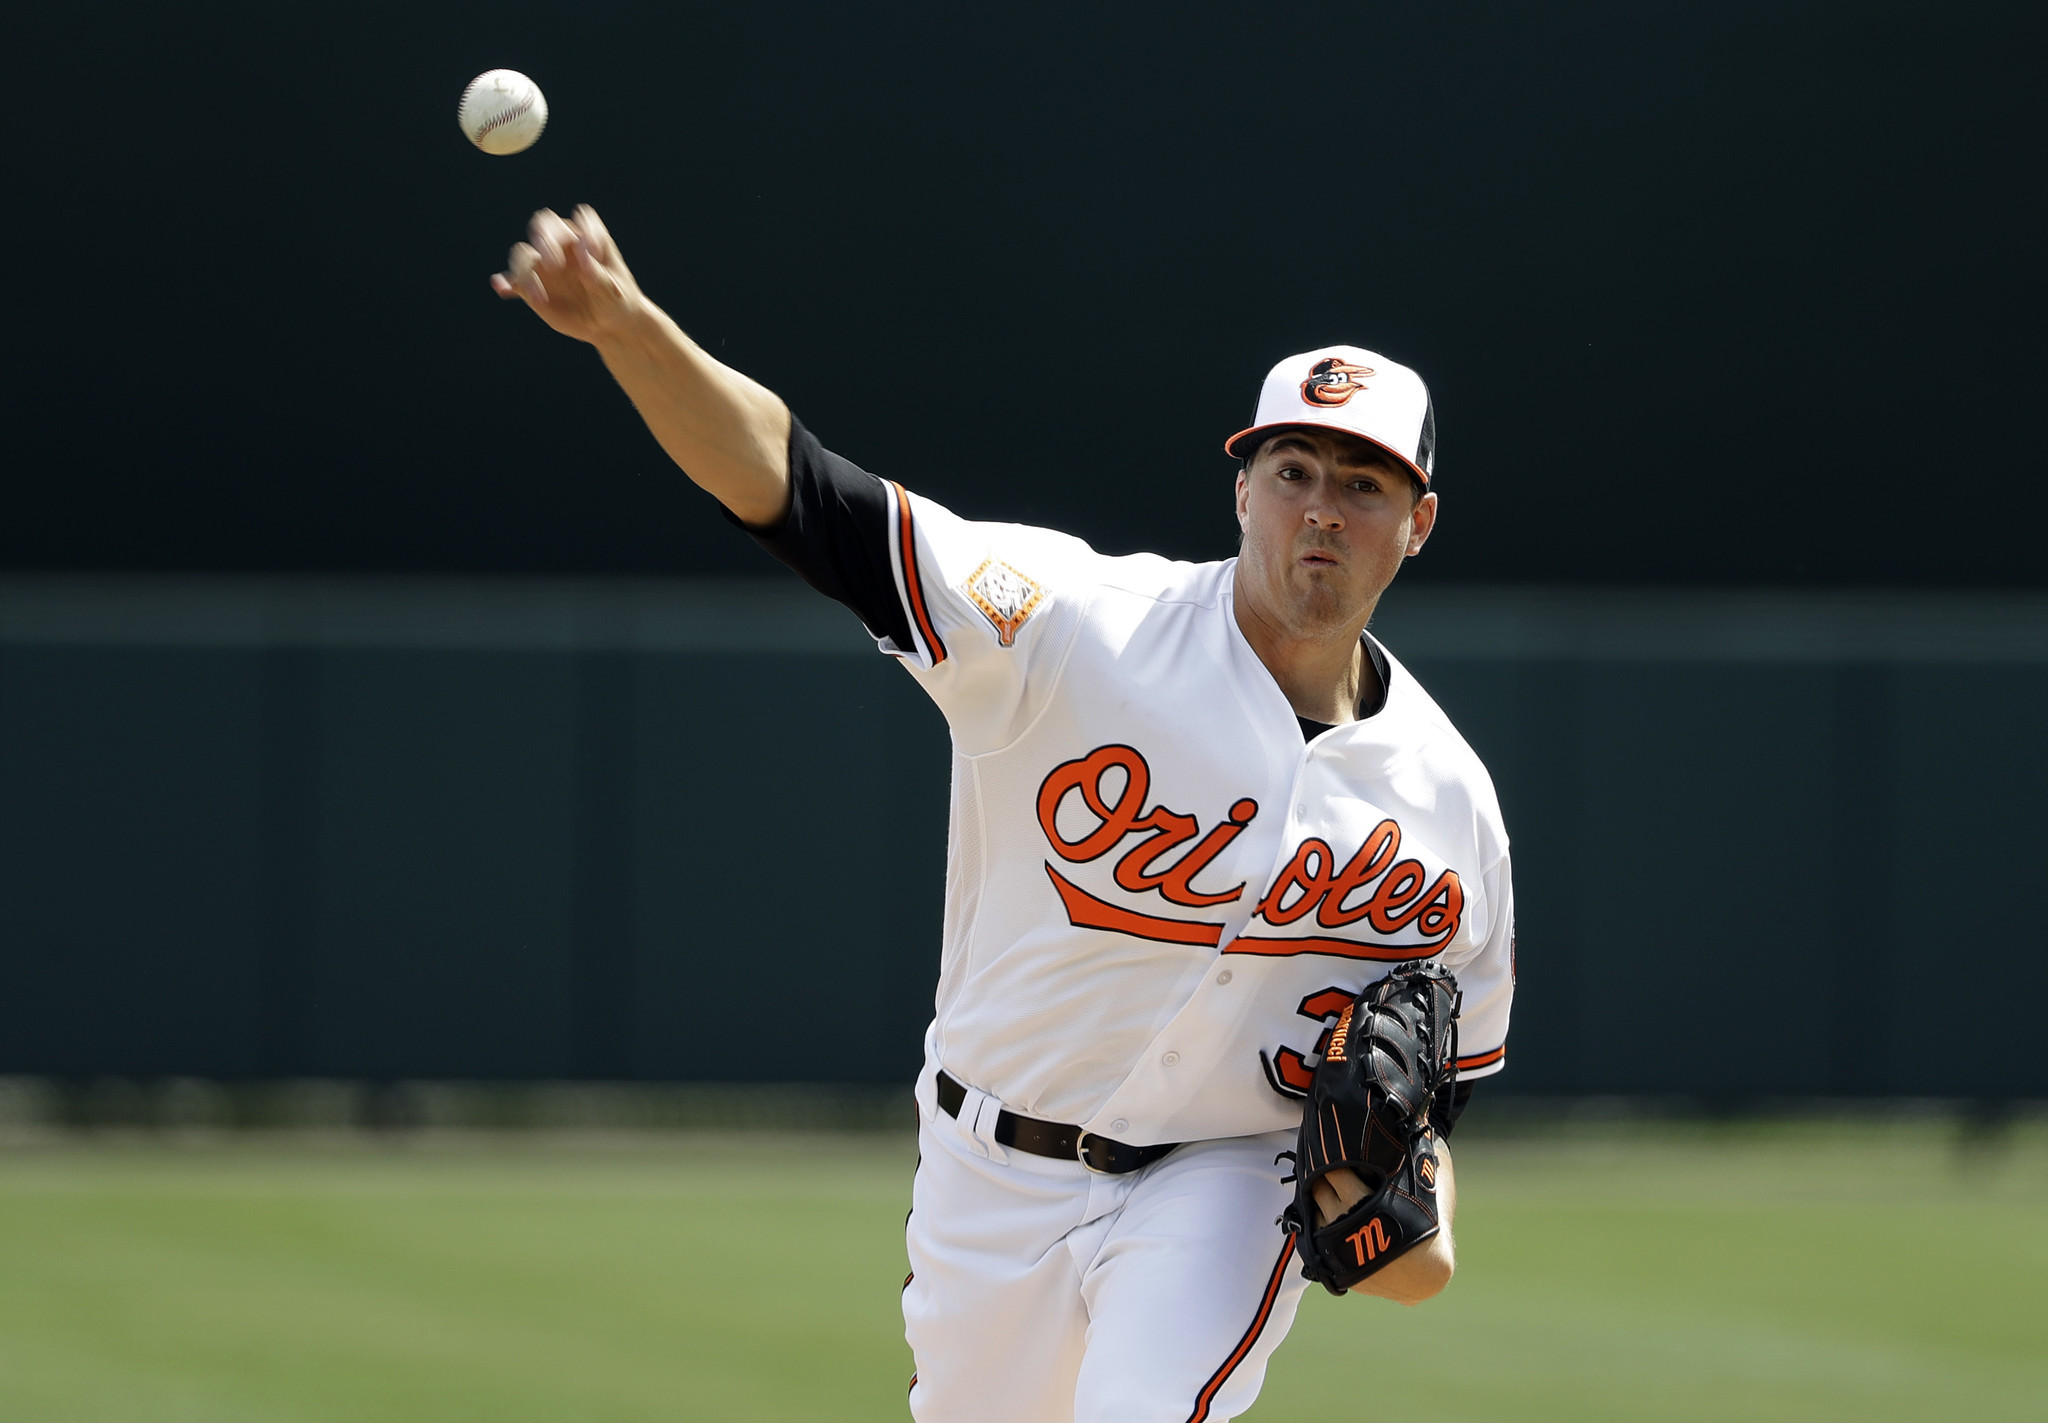 Bal-gausman-gets-final-tuneup-before-orioles-bullpen-implodes-in-15-6-loss-20170329